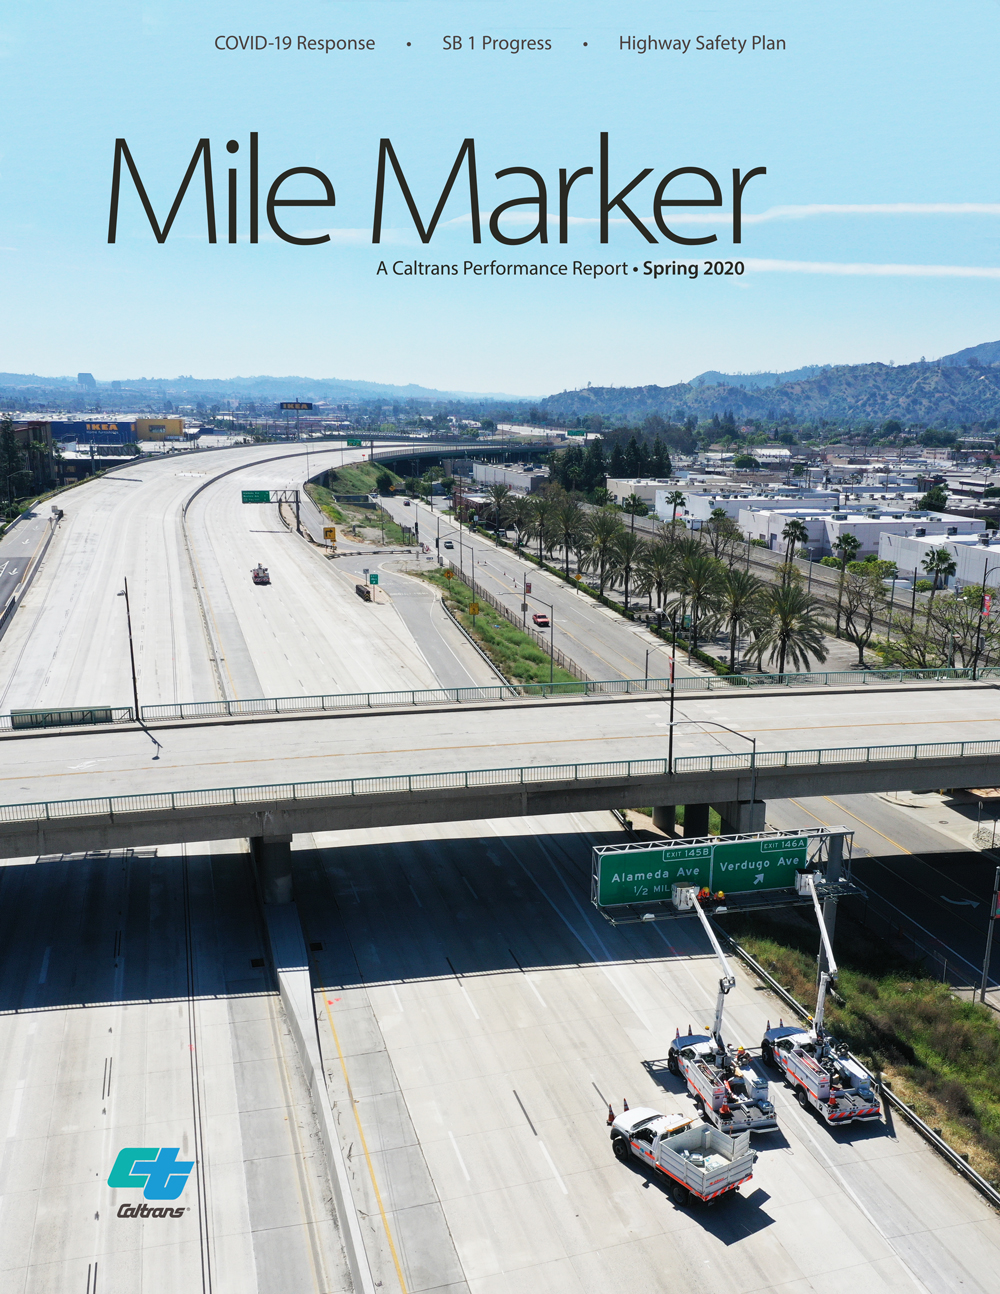 Image of the Mile Marker Spring 2020 Cover, showing Caltrans crews maintaining an overhanging sign on the freeway in southern California